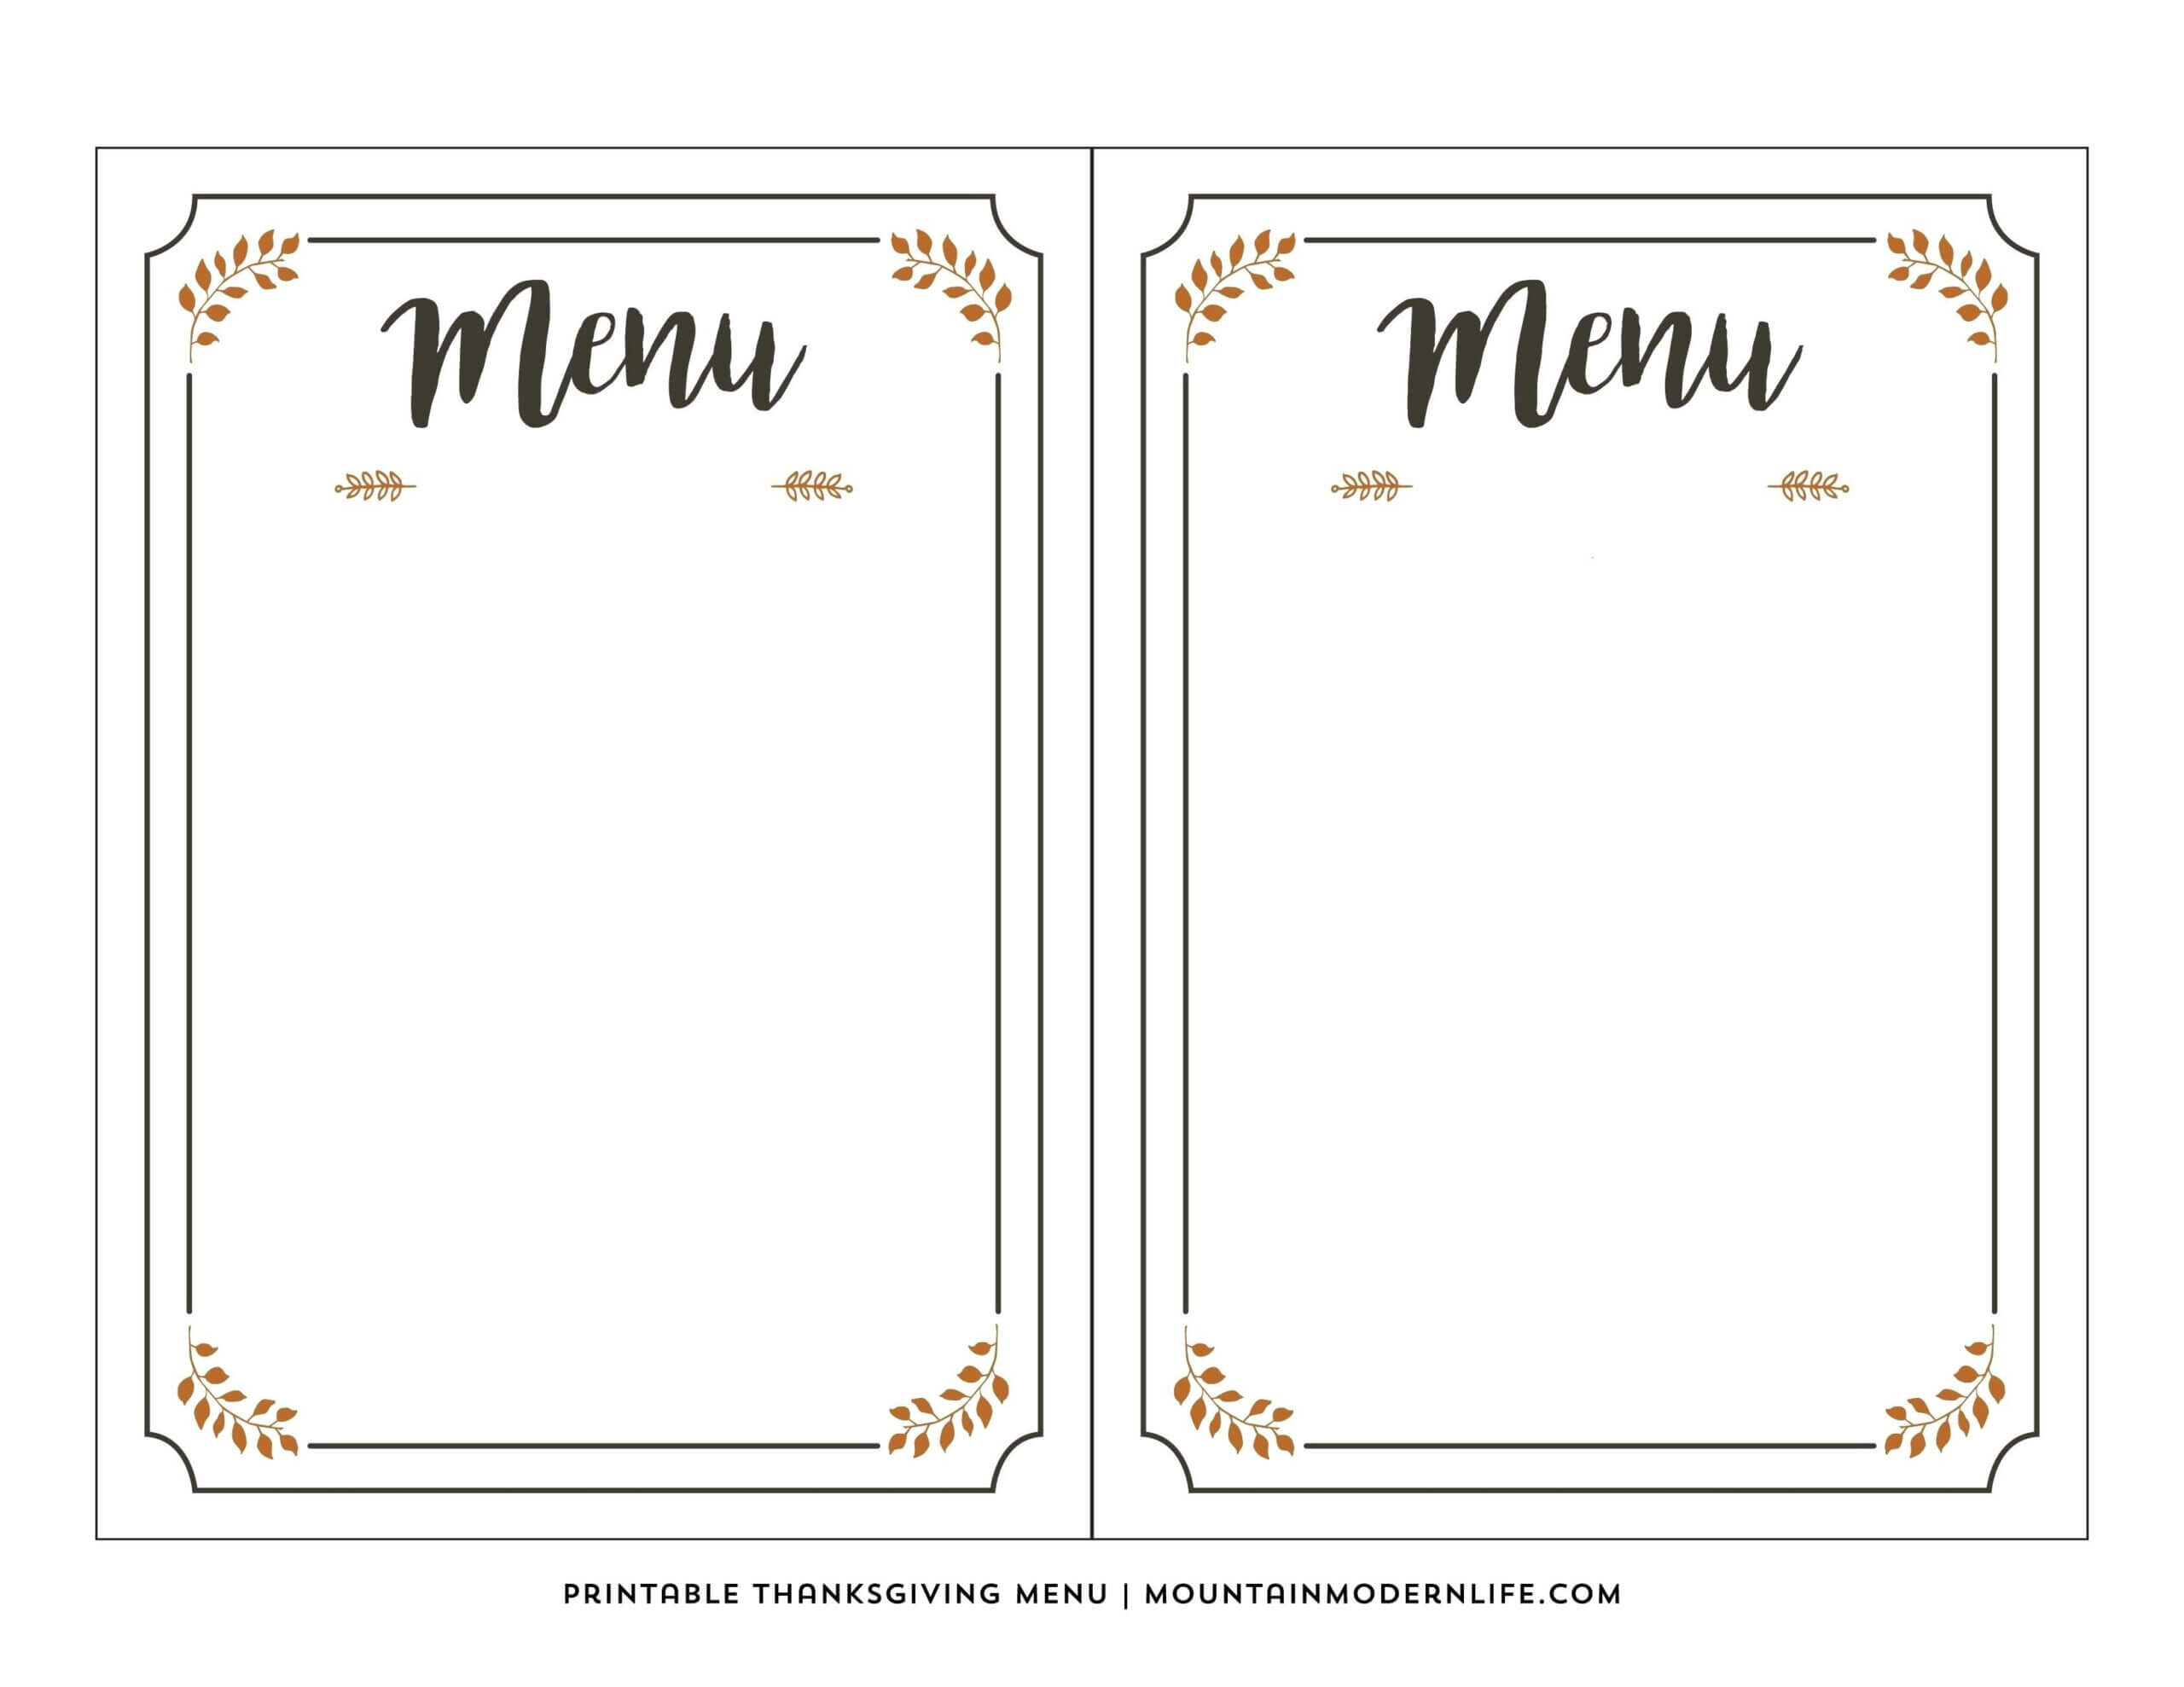 001 Printable Menu Selo Yogawithjo Co With Regard To Blank Throughout Blank Restaurant Menu Template